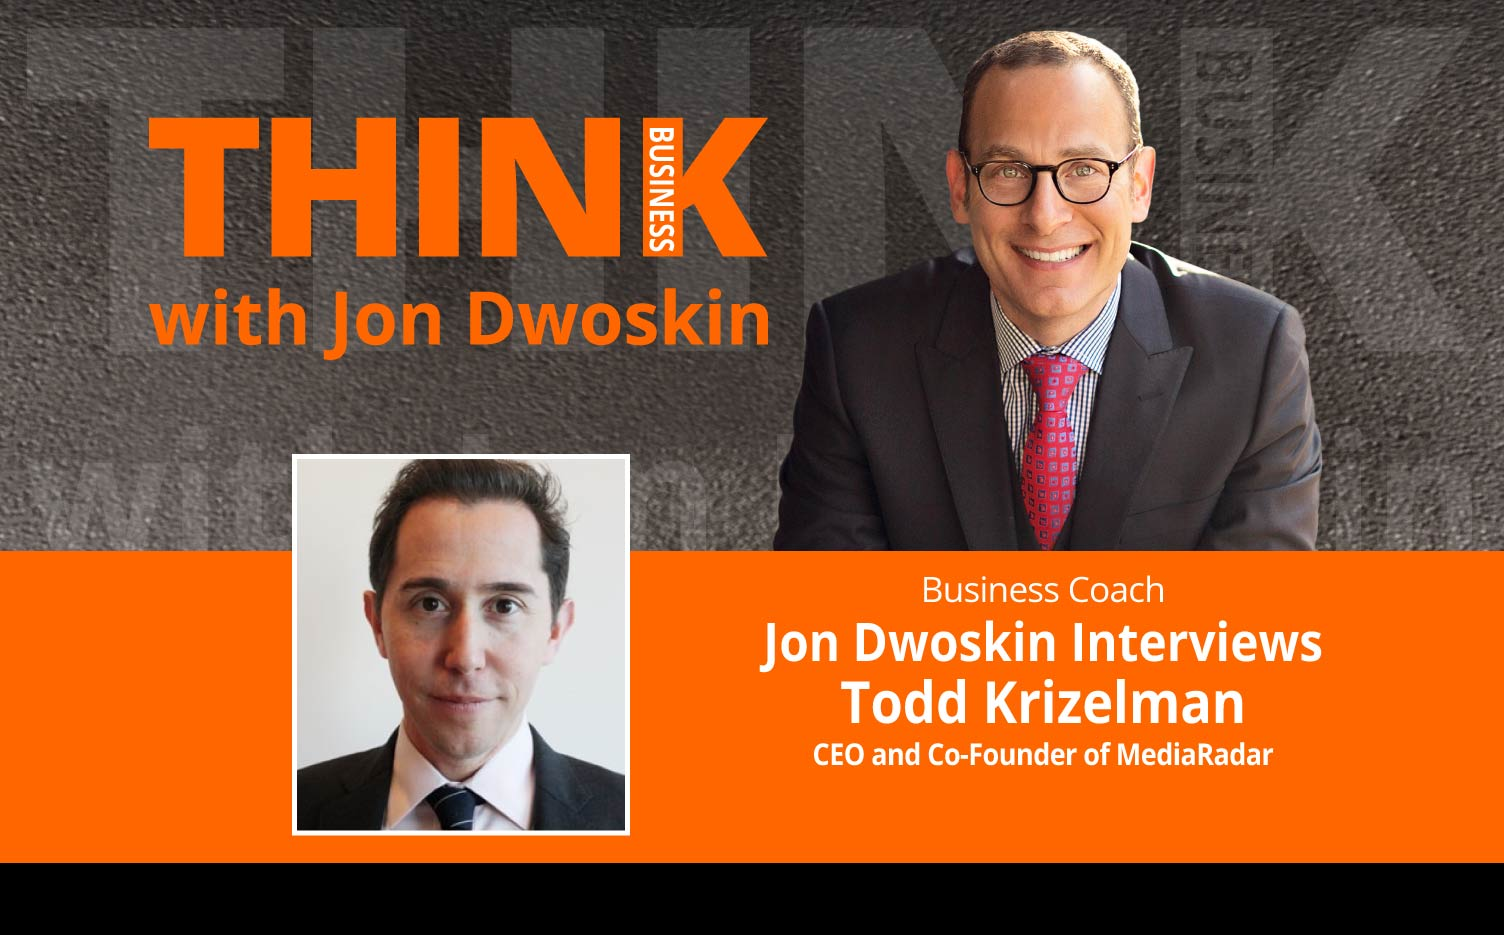 THINK Business Podcast: Jon Dwoskin Interviews Todd Krizelman, CEO and Co-Founder of MediaRadar